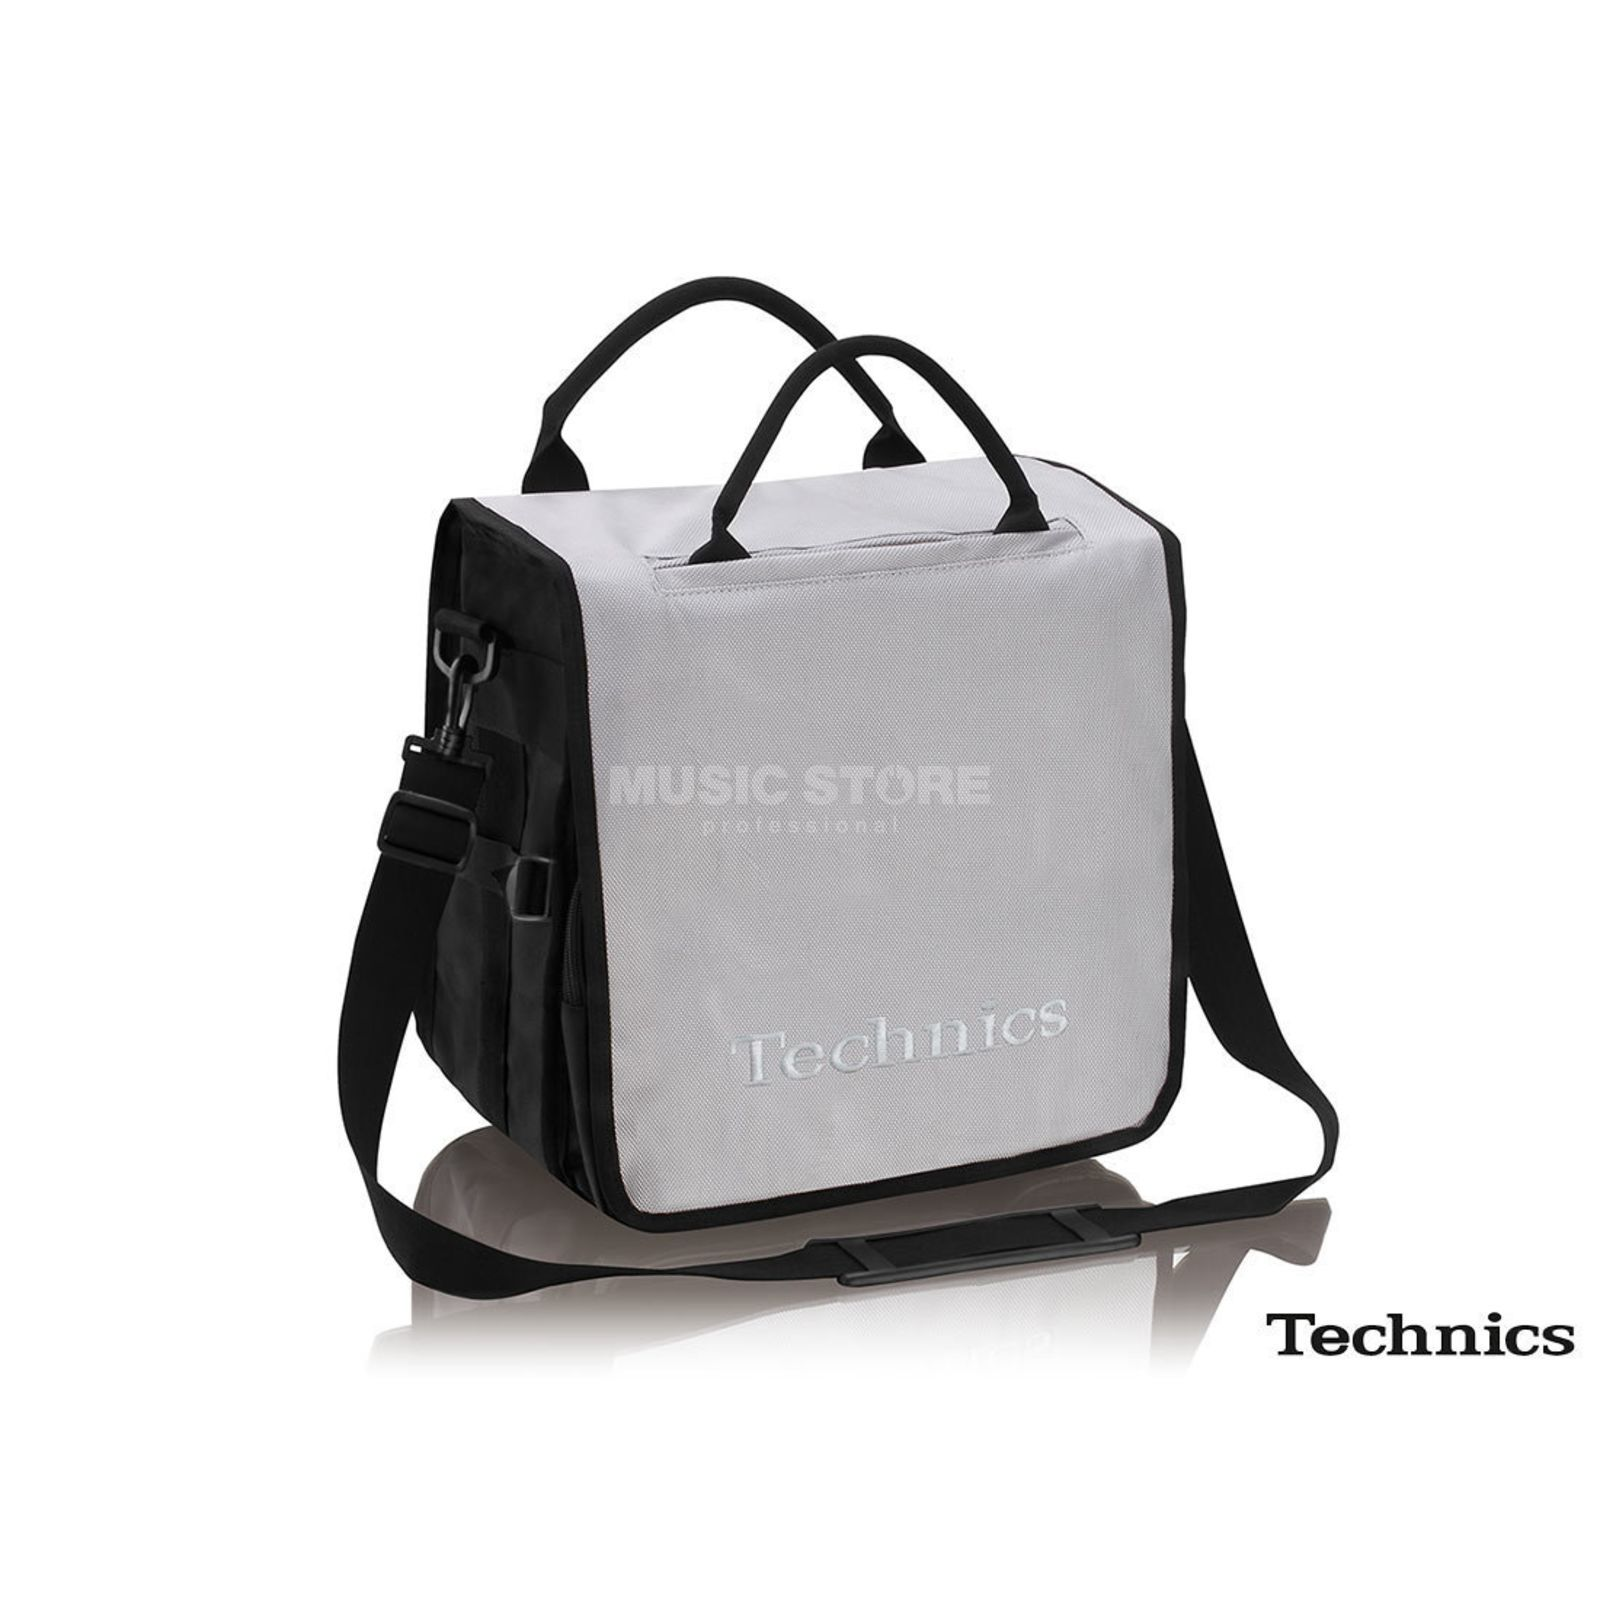 Technics BackBag silver-white  Produktbillede